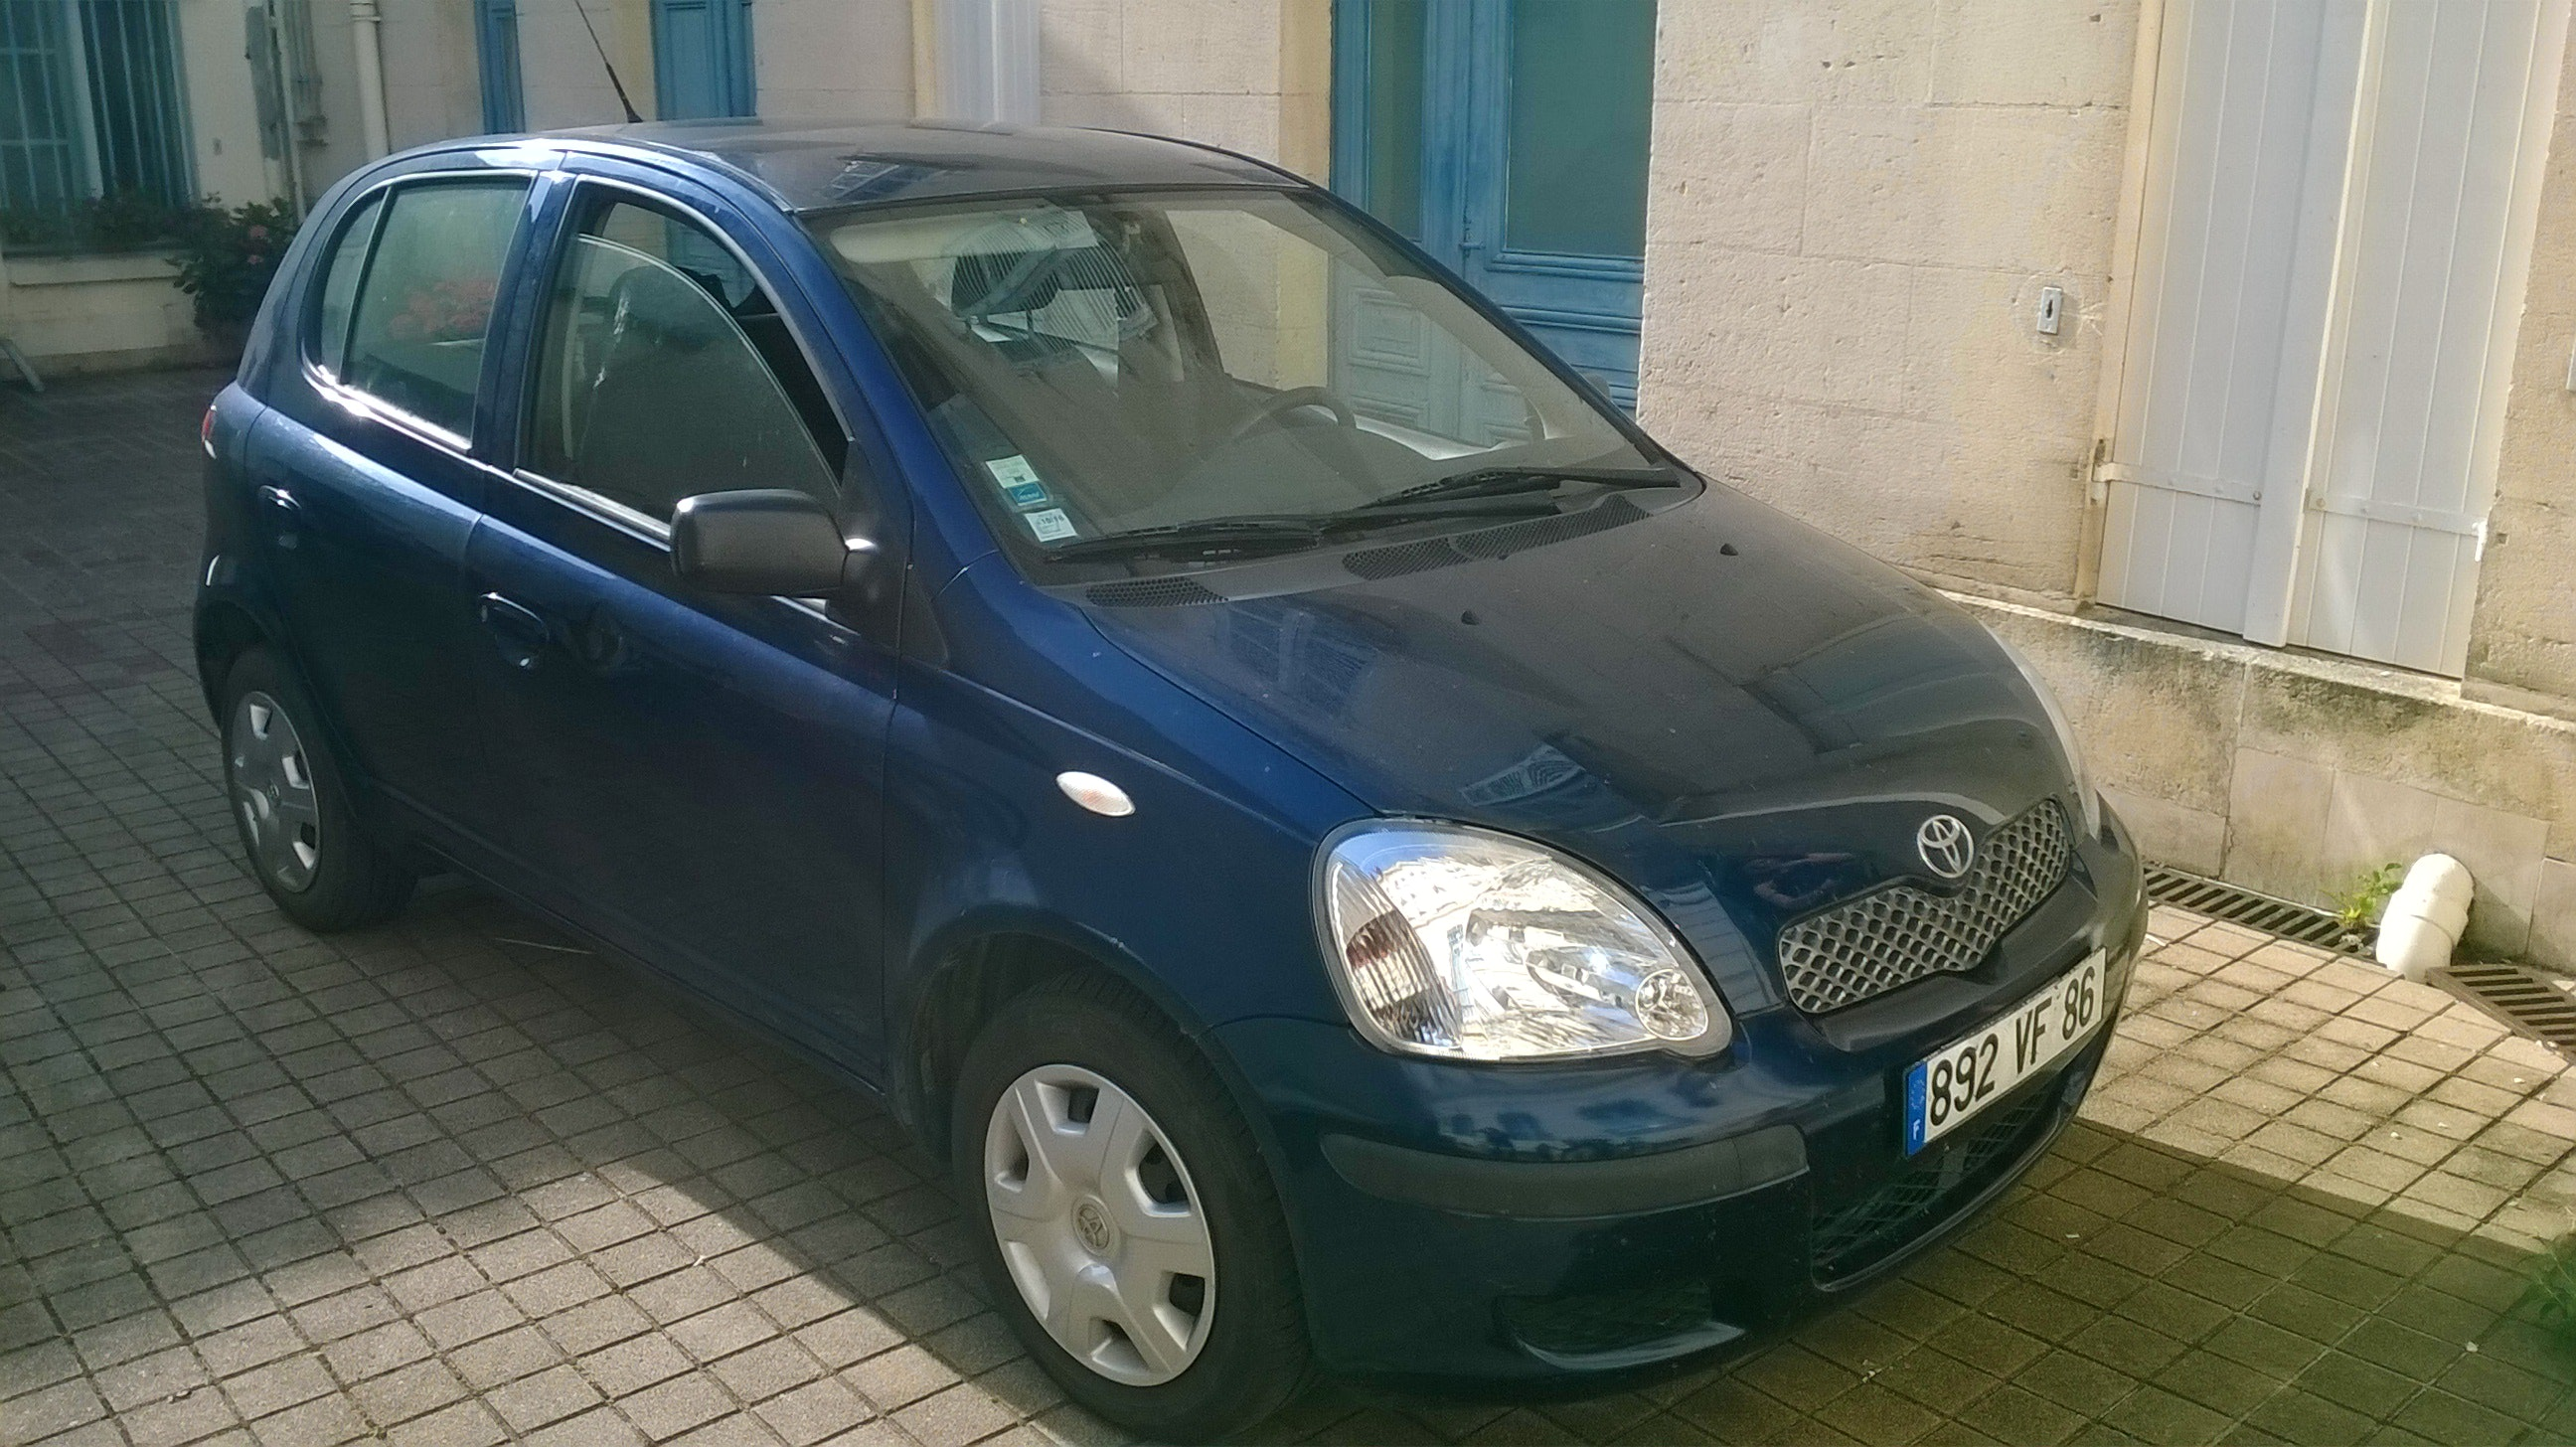 Toyota Yaris 1.0 68CV, 2004, Essence